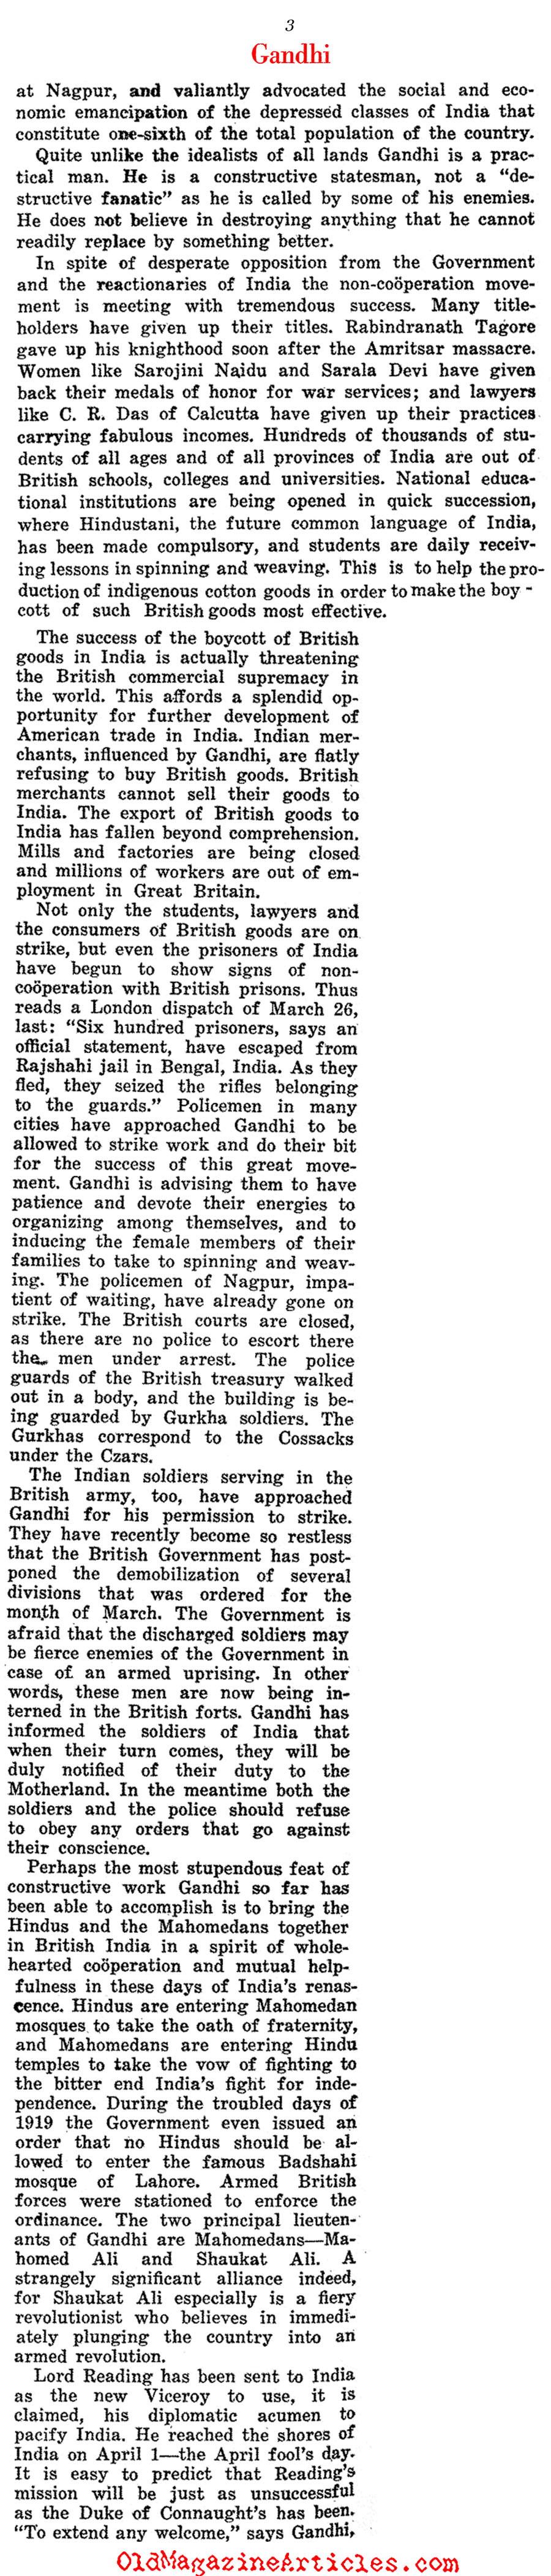 A Profile of Mahatma Gandhi (The Independent, 1921)